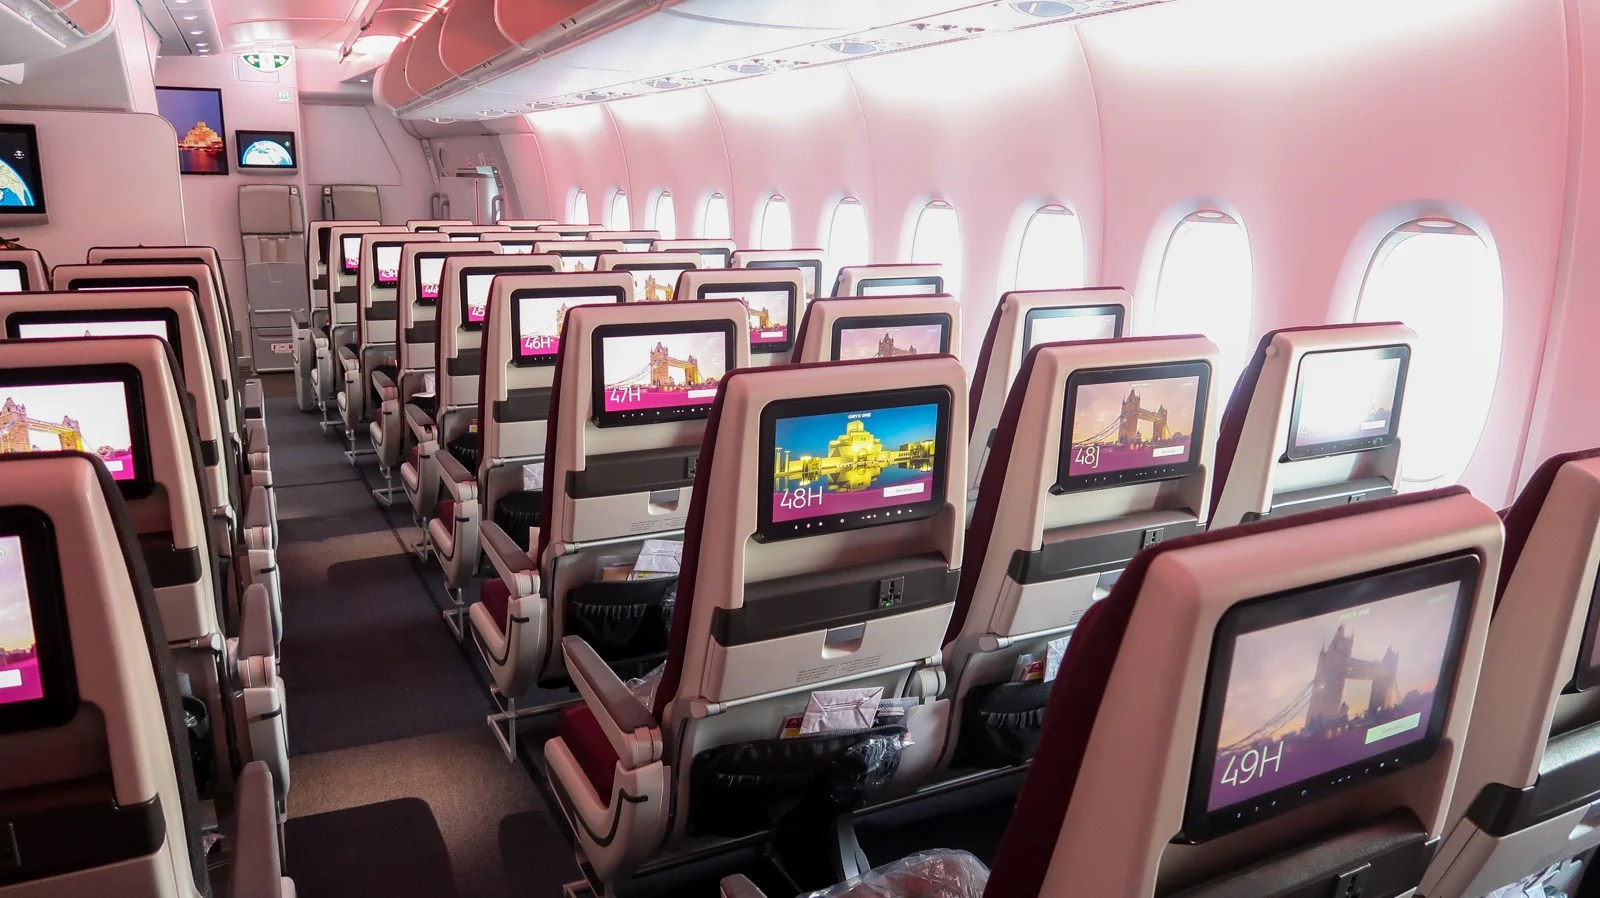 I Didn't Want to Get Off the Plane: A Review of Qatar Airways Economy on the A380 From Doha to London